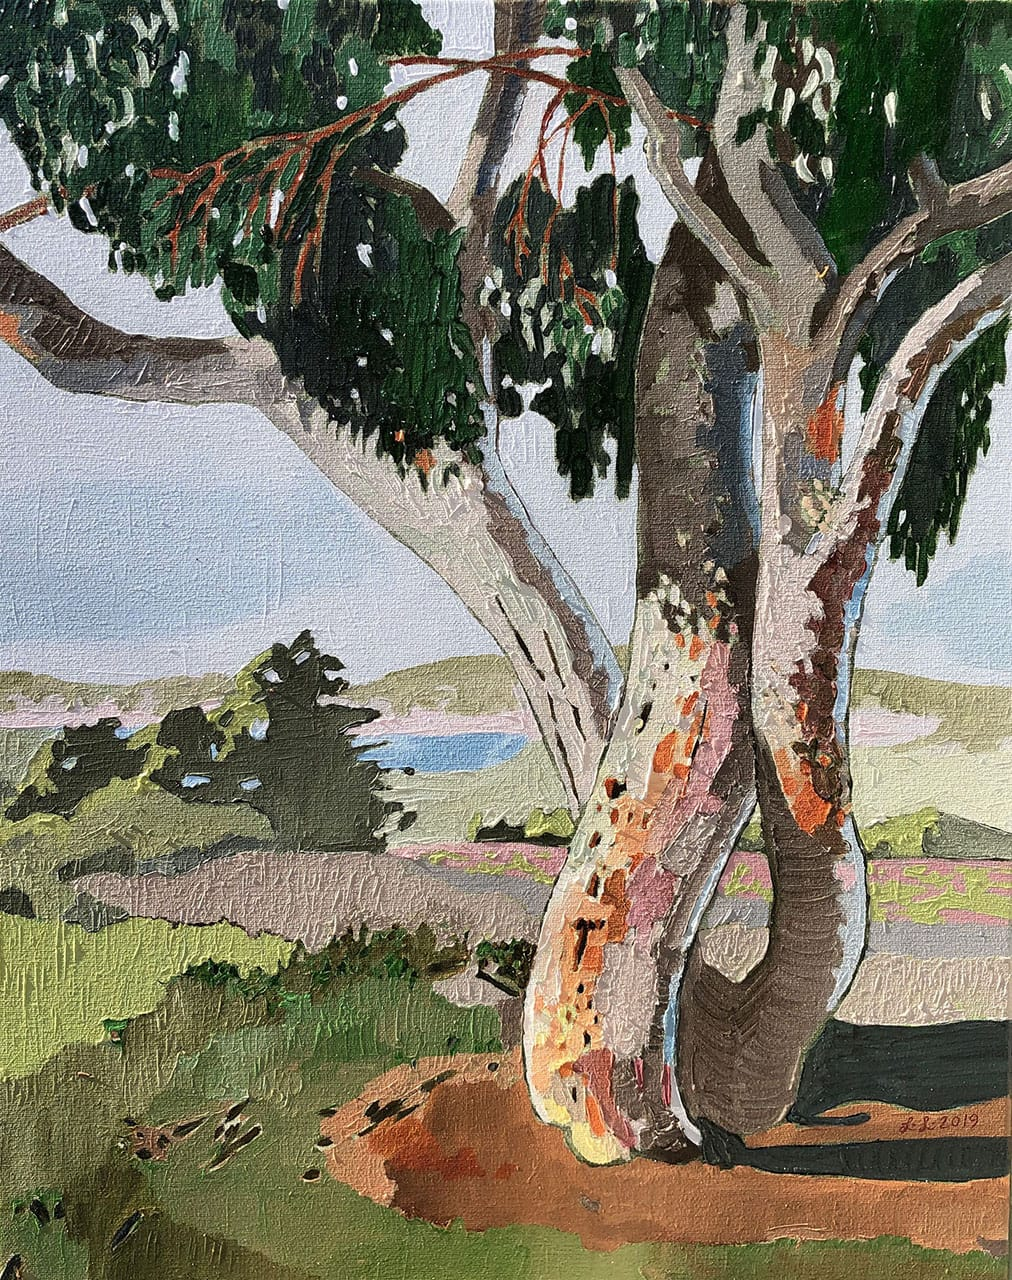 Gumtree, oil on canvas, 20x16inches